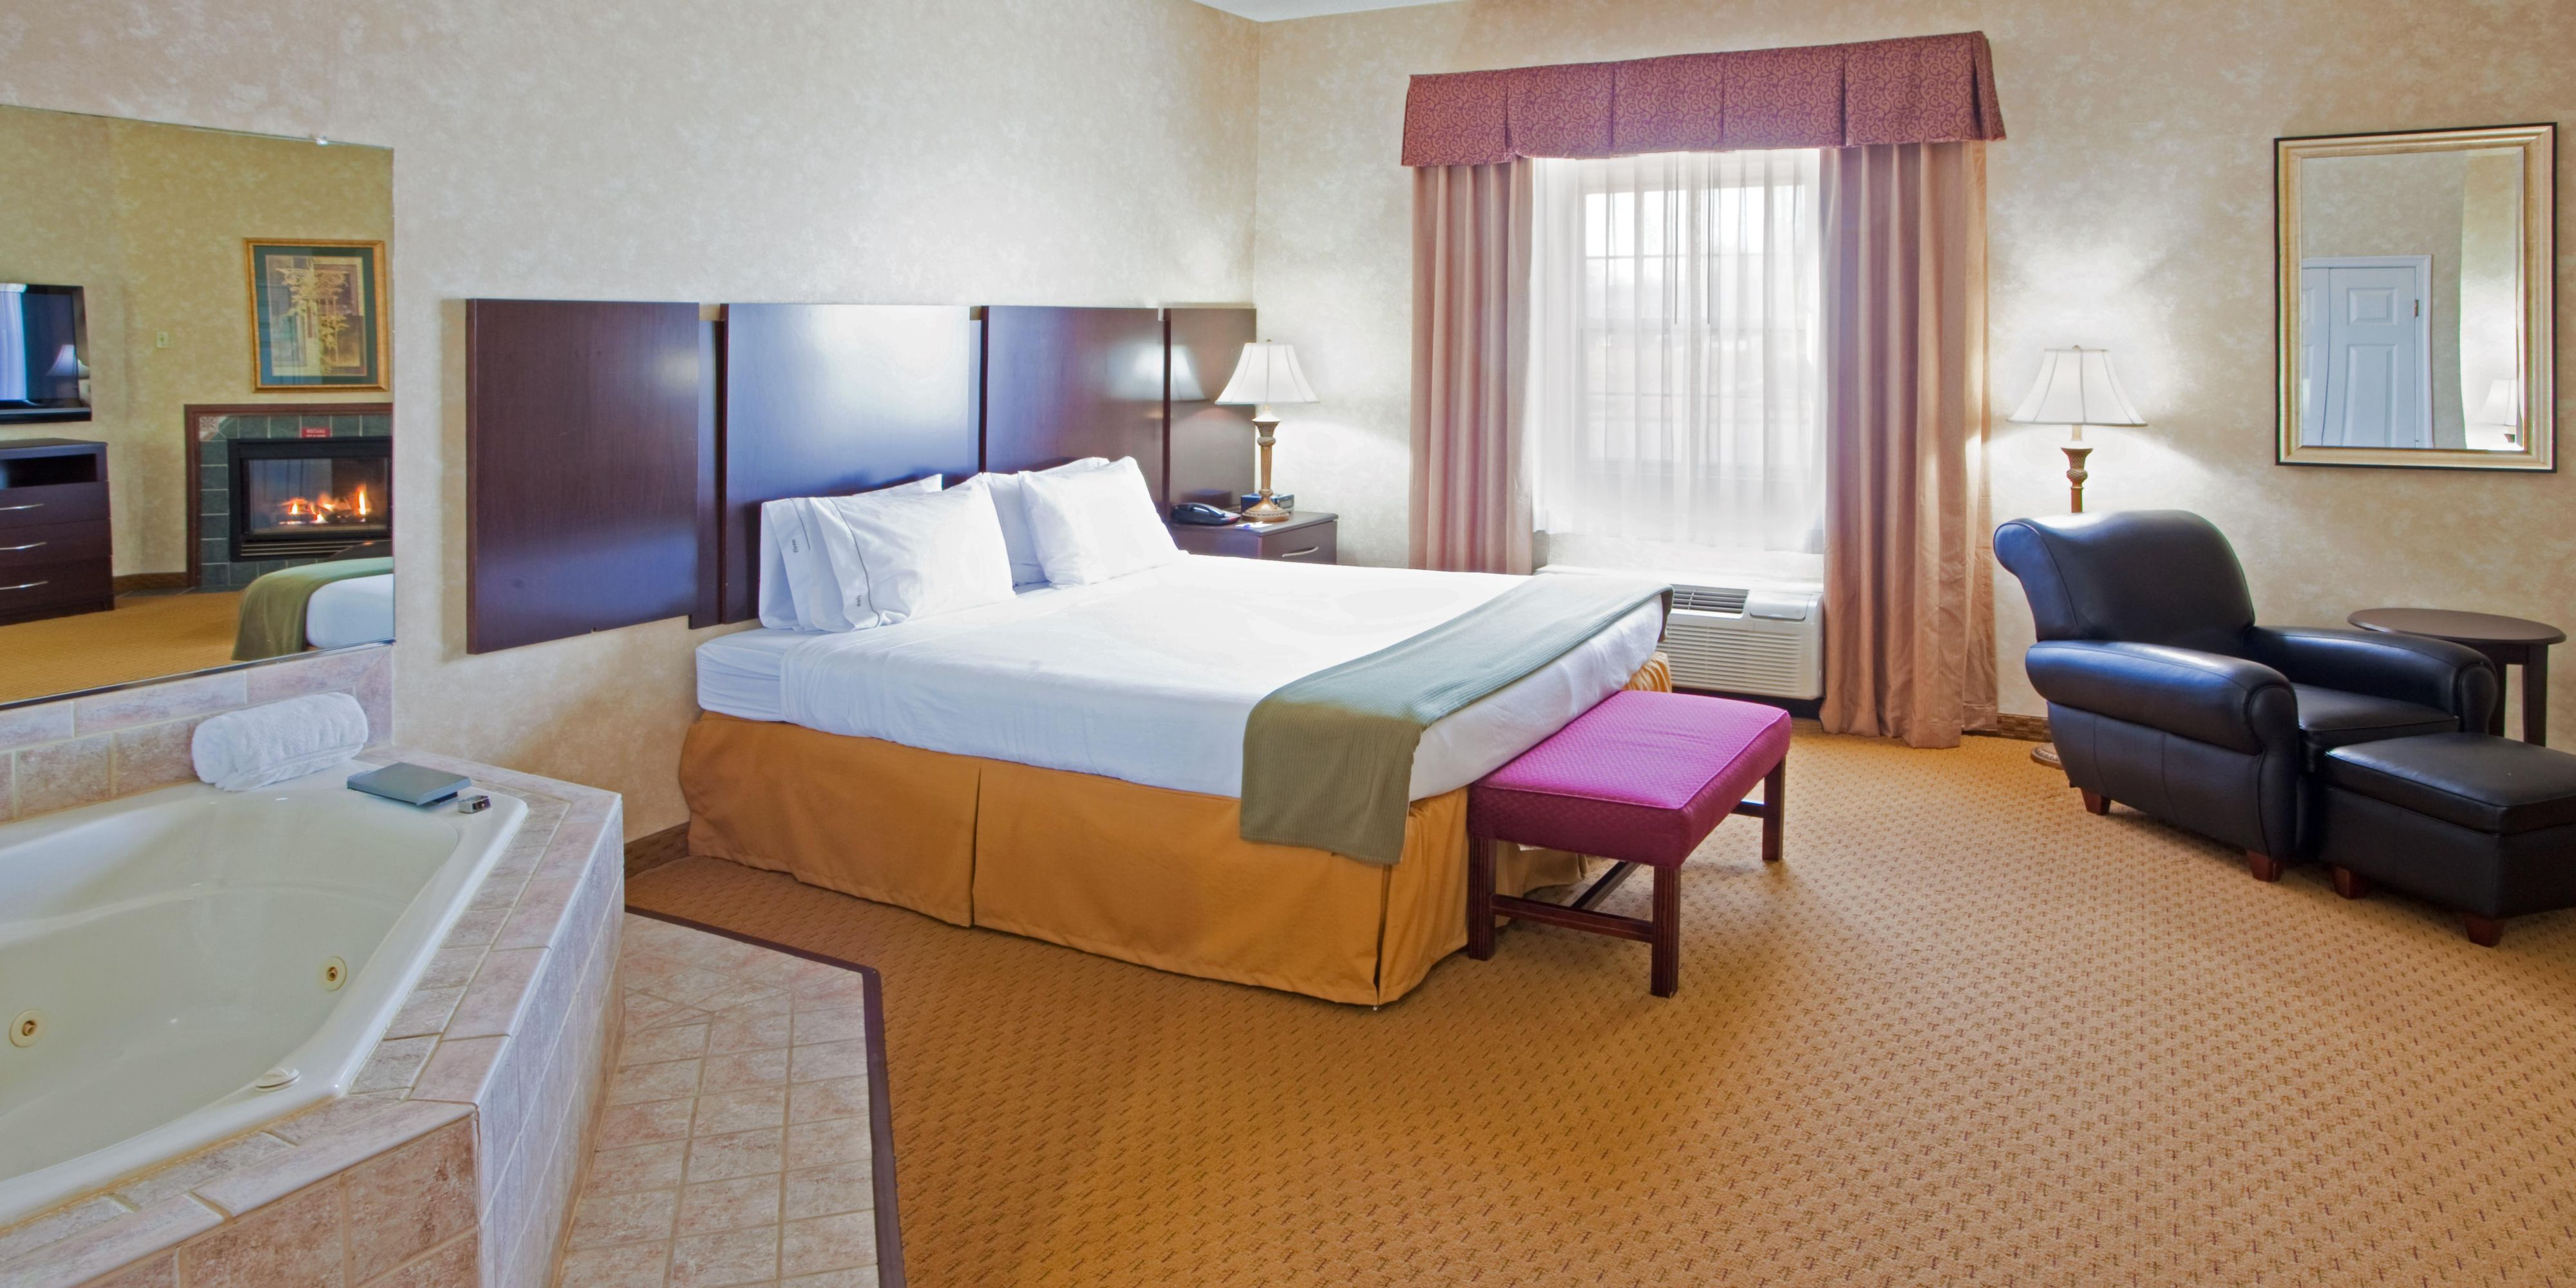 Holiday Inn Express Prince Frederick 2532595748 2x1